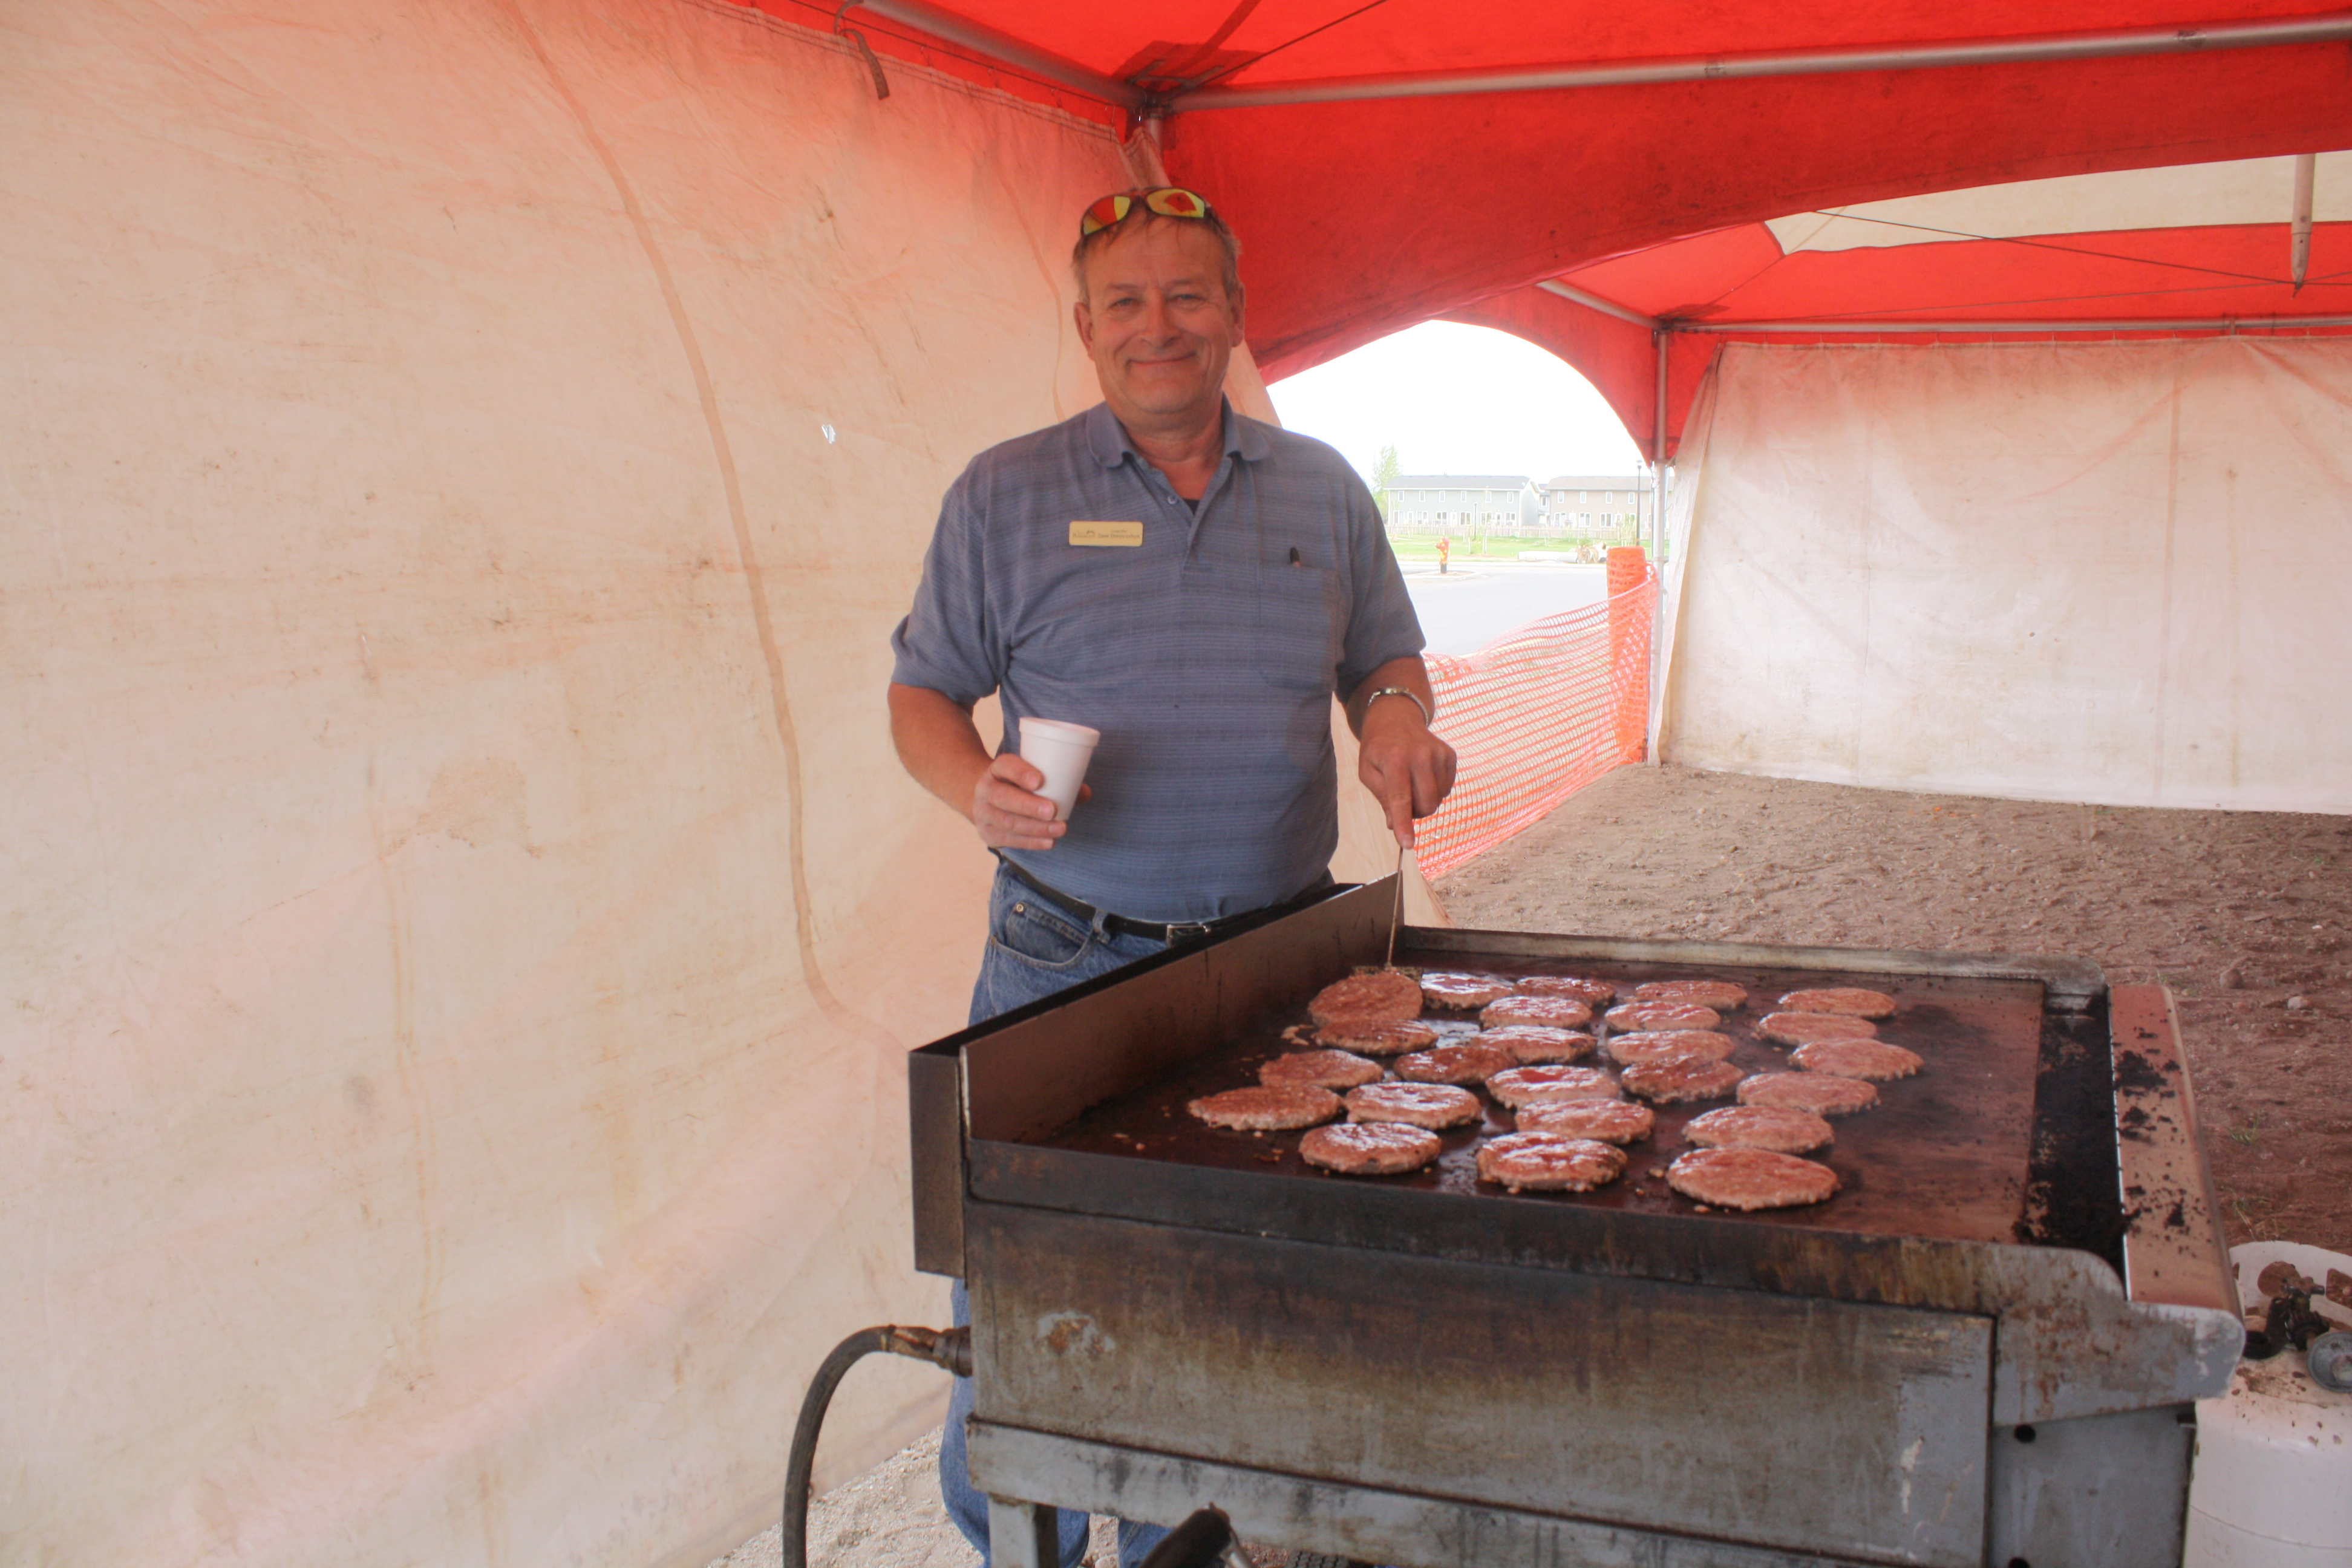 Councillor Dmytryshyn Cooking Burgers